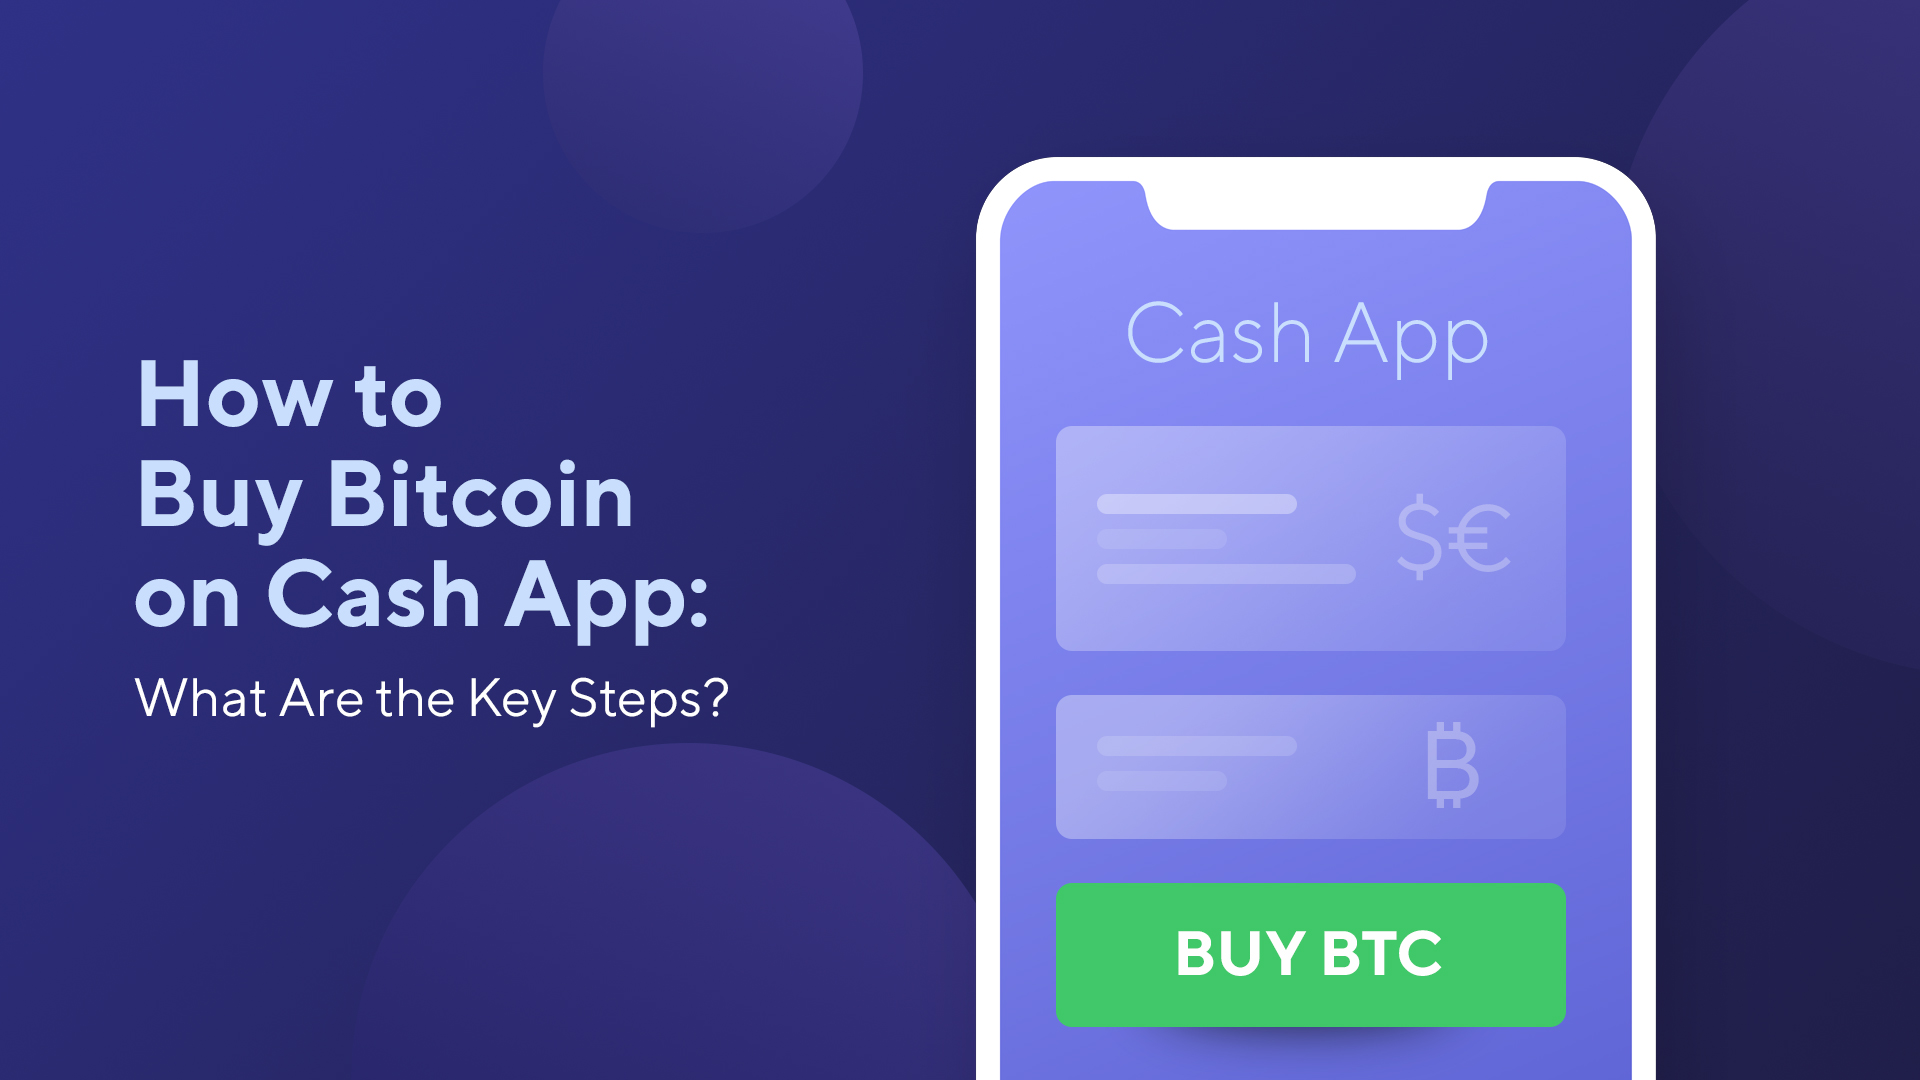 How to Buy Bitcoin on Cash App: What Are the Key Steps?